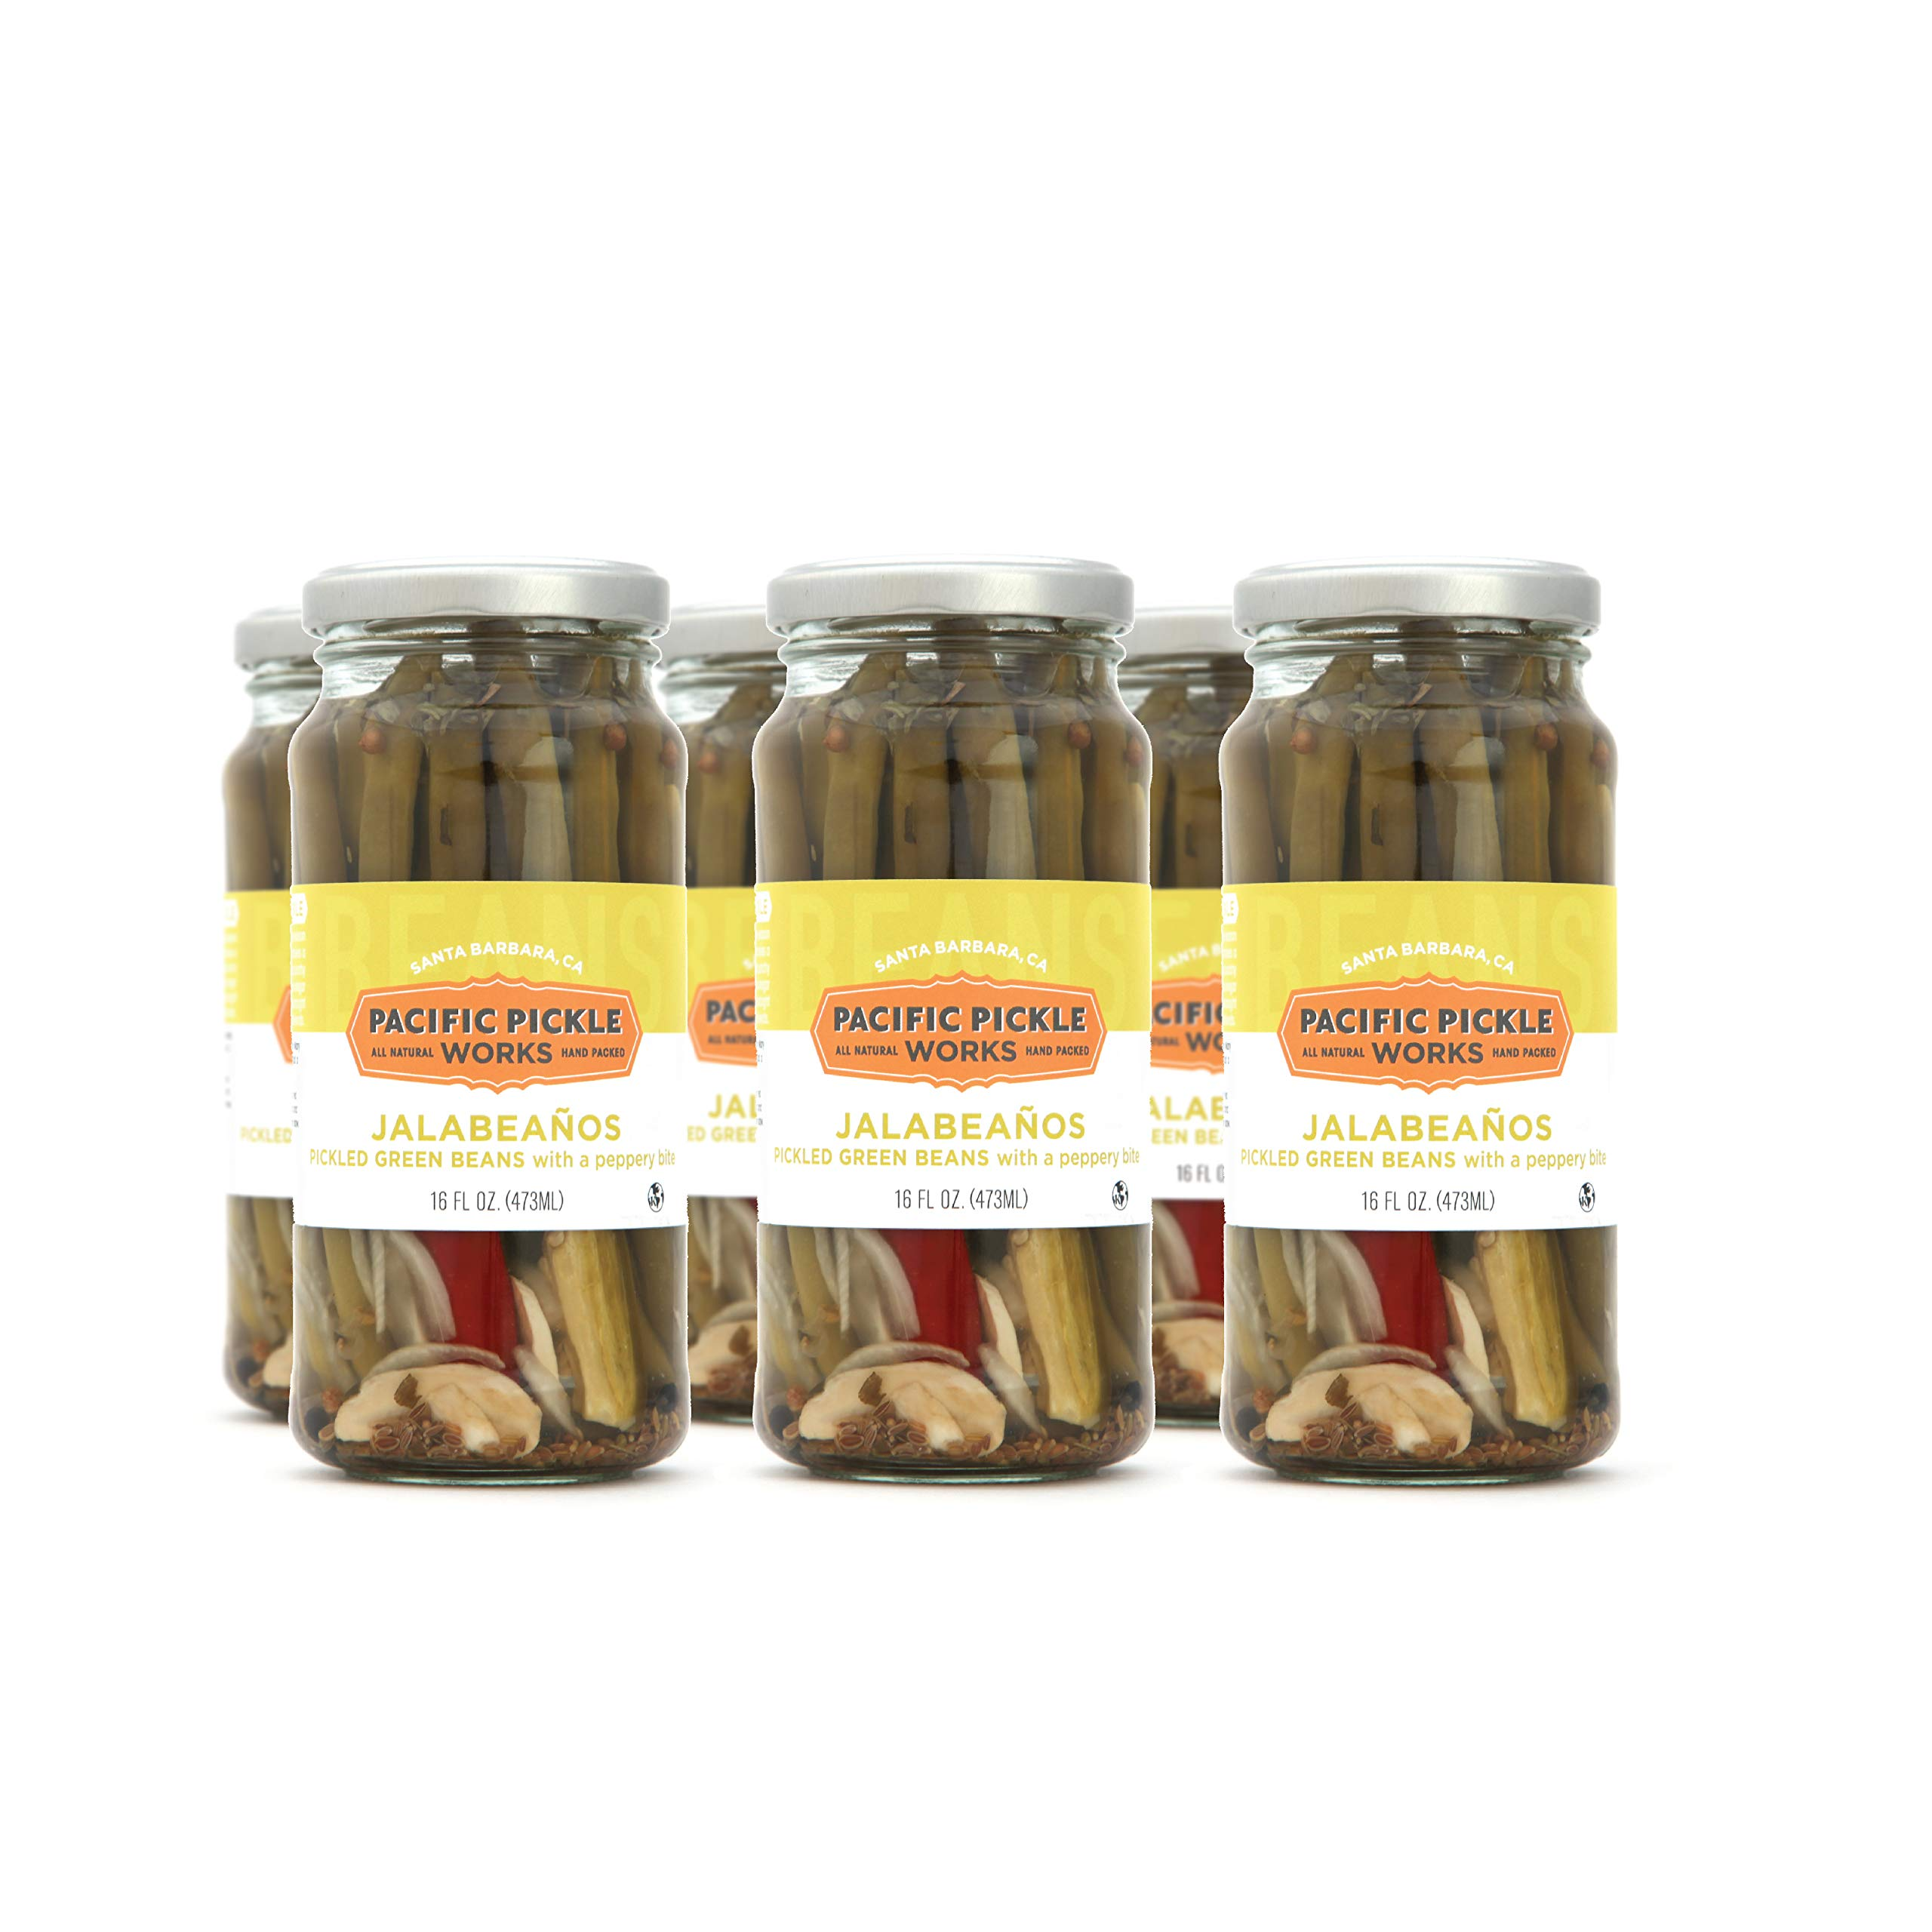 Jalabeaños (6-pack) - Spicy pickled green beans 16oz by Pacific Pickle Works (Image #1)